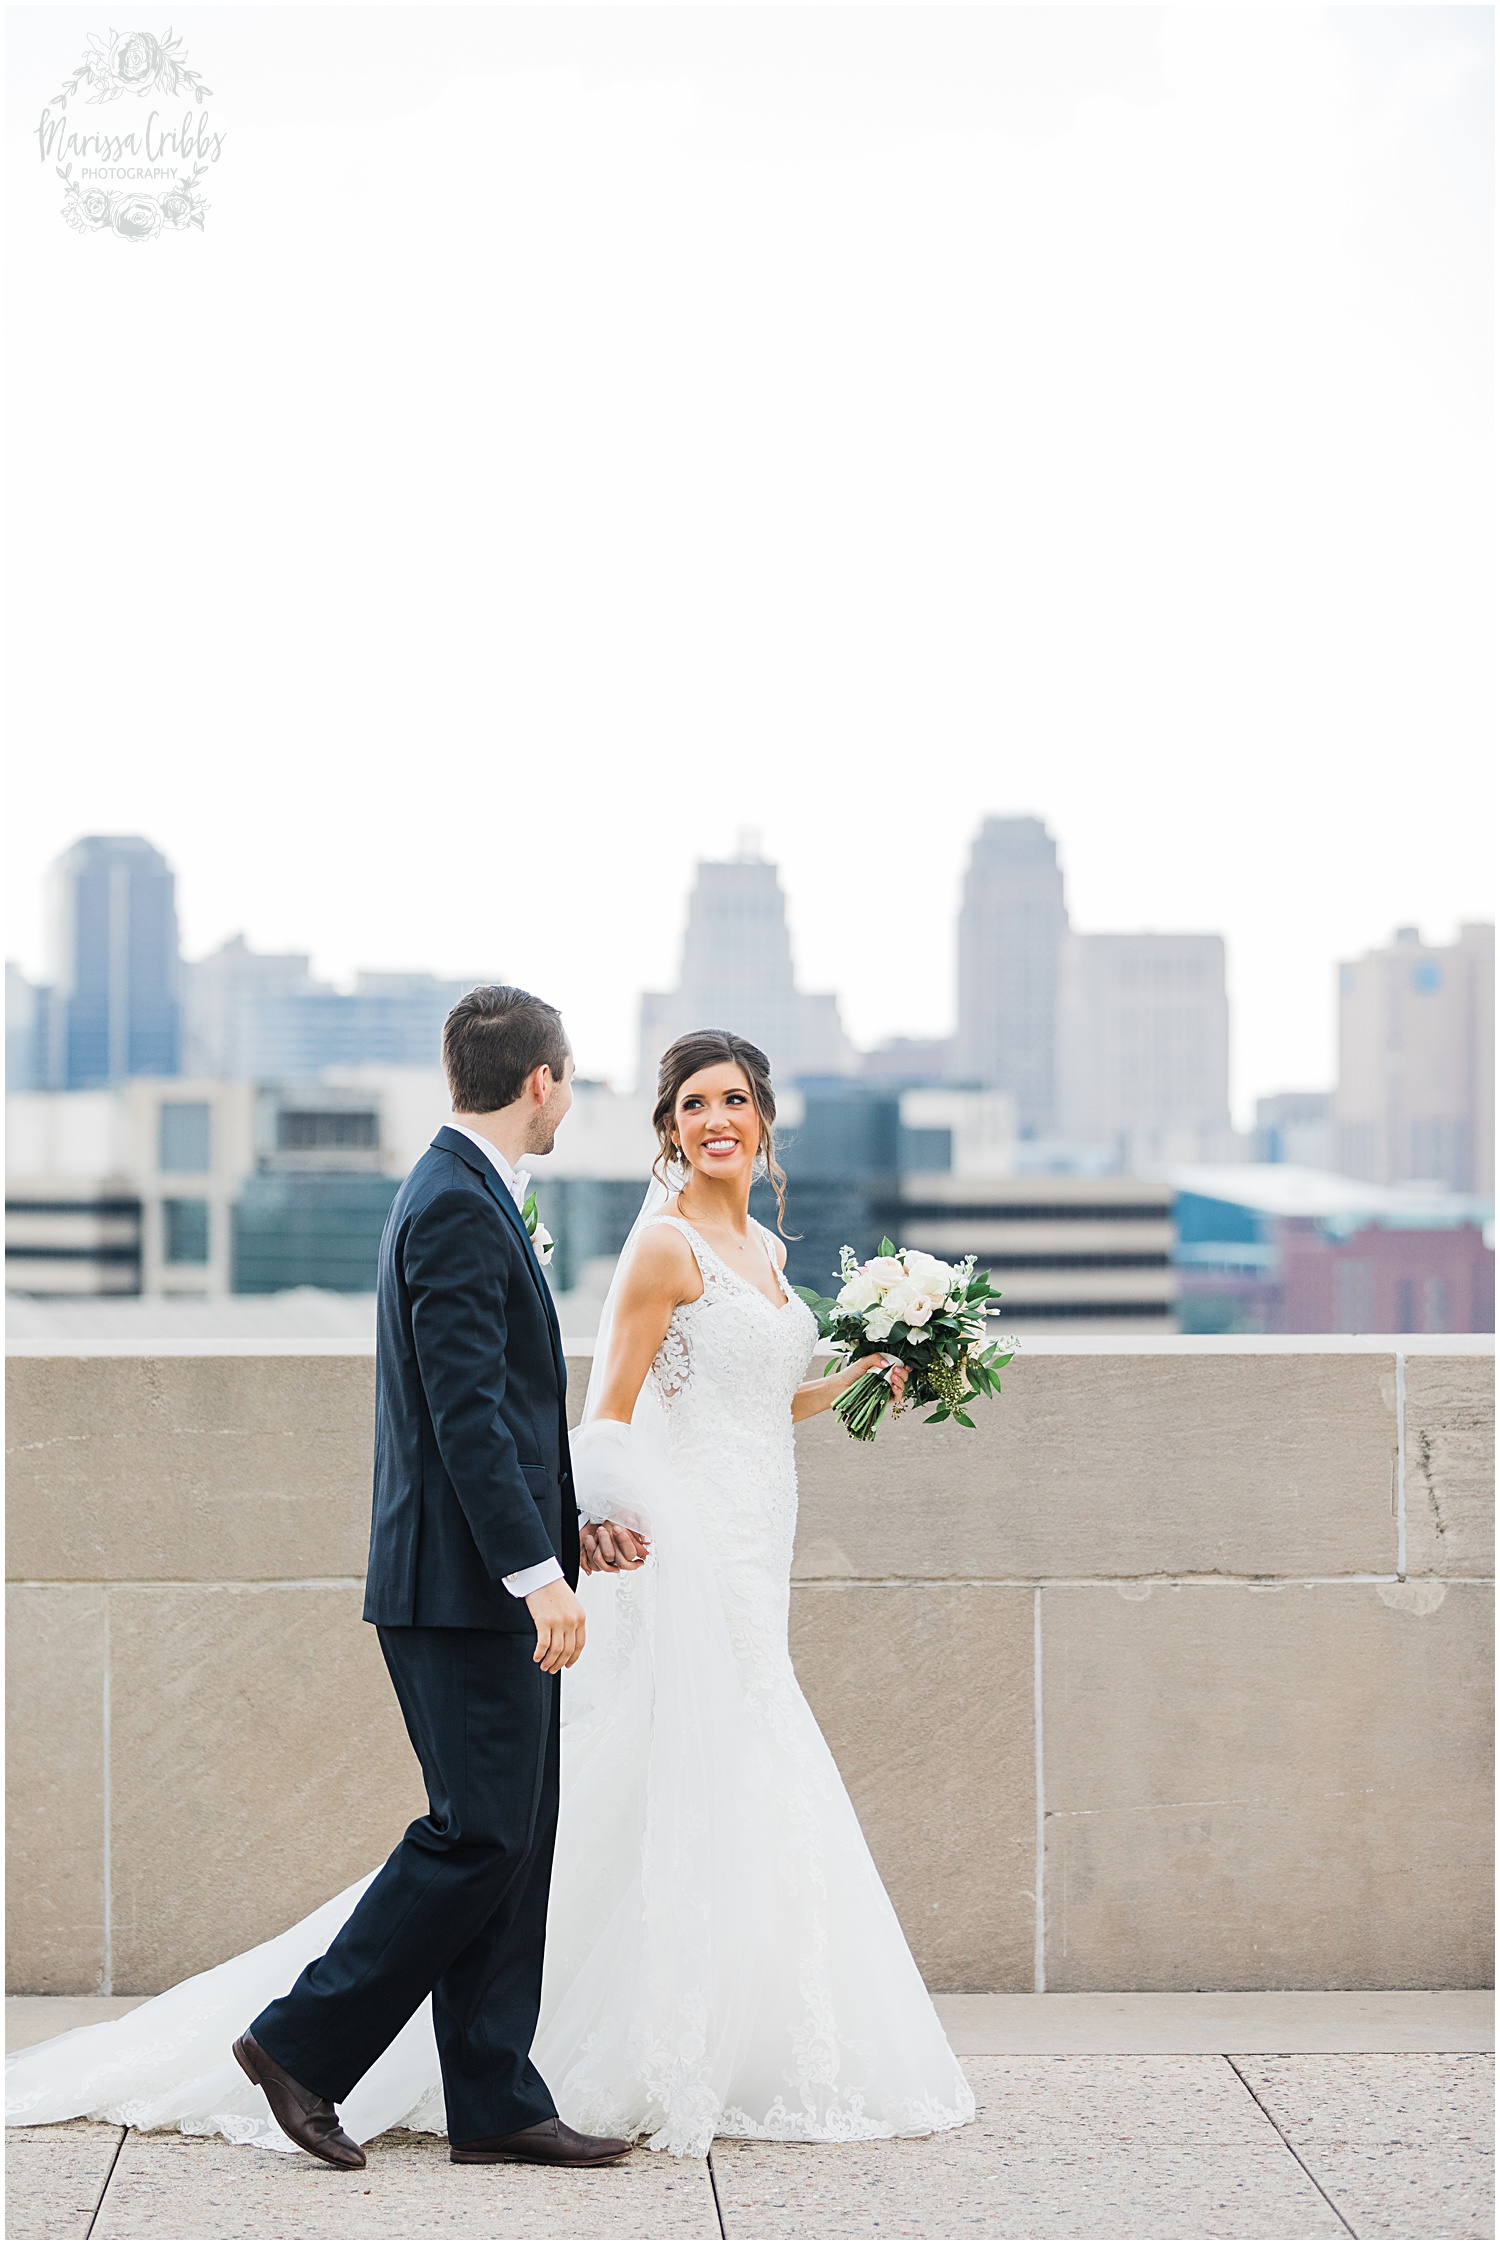 MEGAN & DEREK WEDDING BLOG | MARISSA CRIBBS PHOTOGRAPHY_8155.jpg